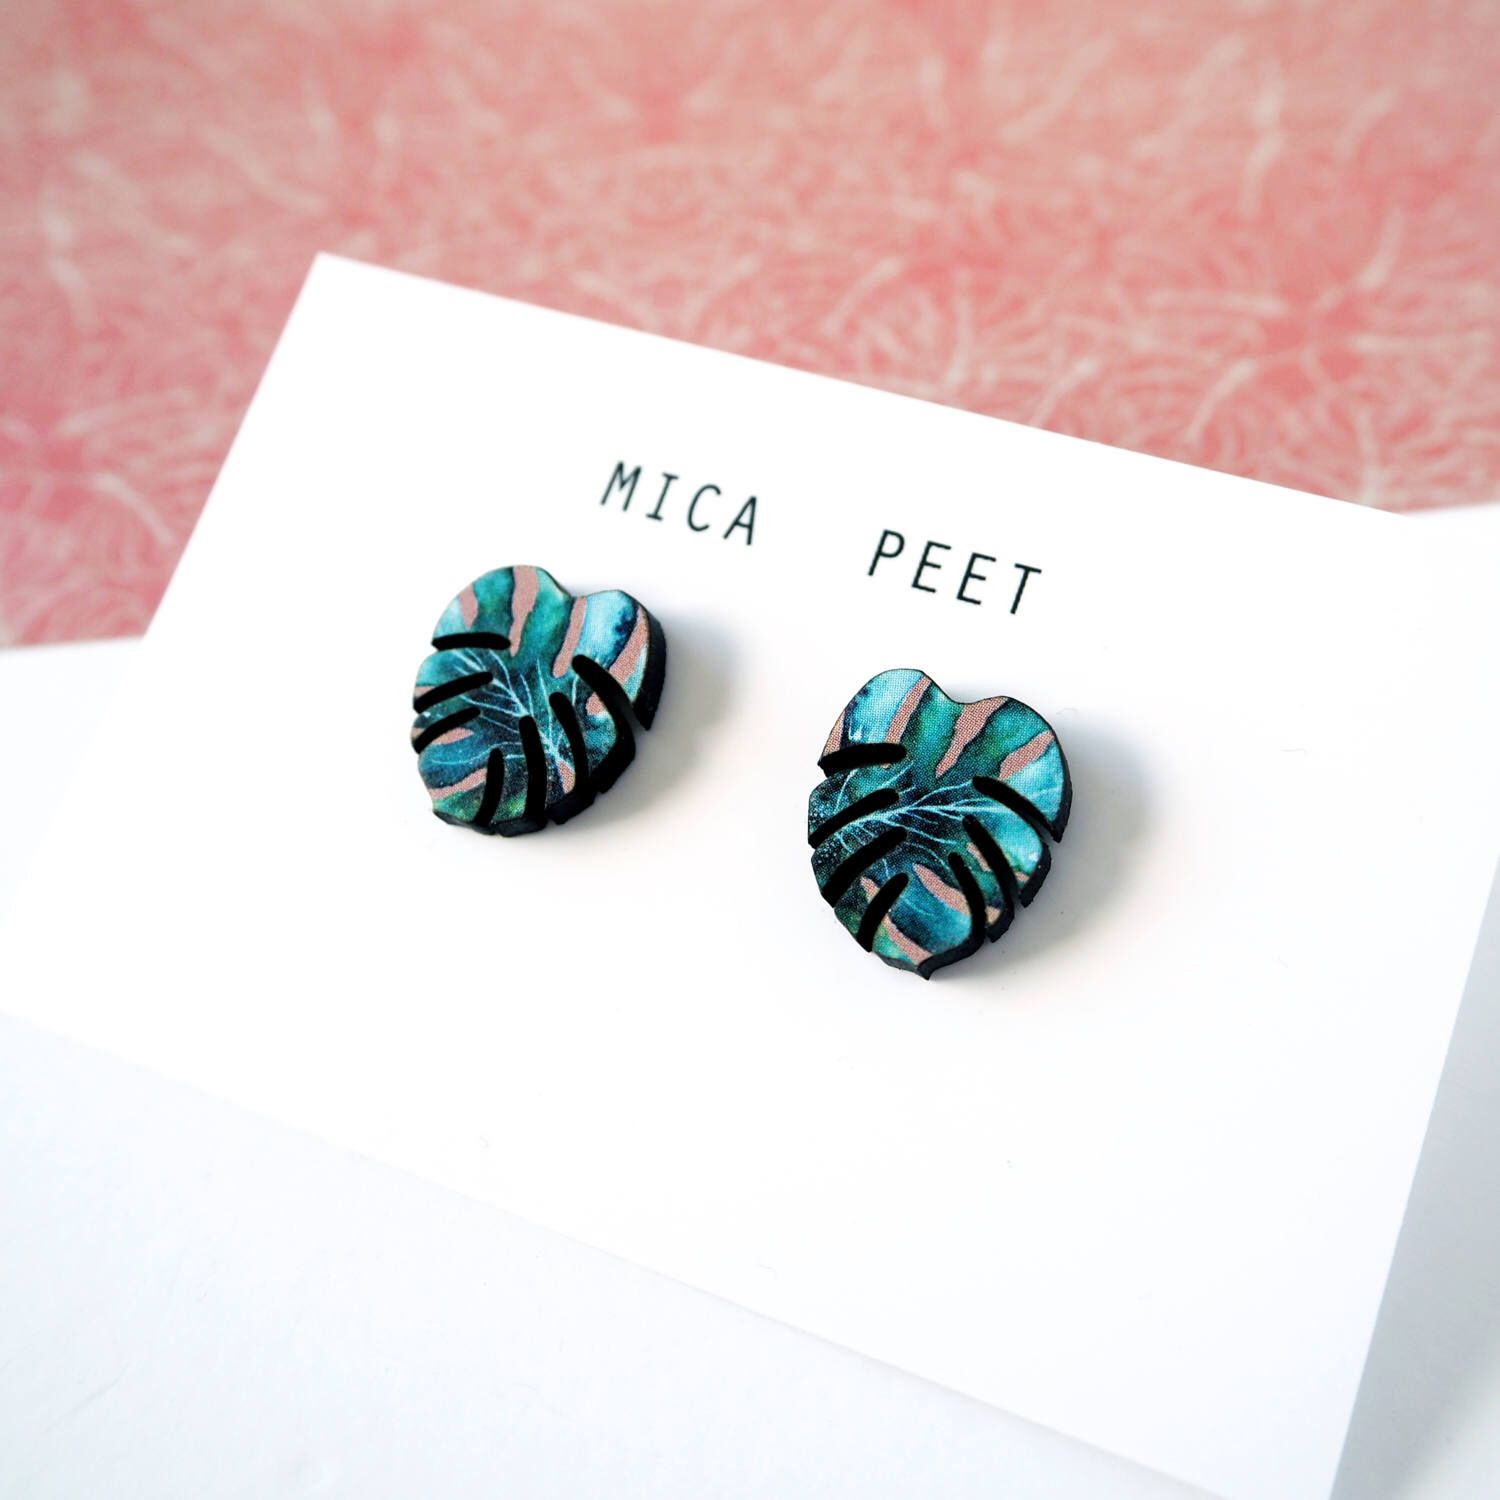 93d9ec6a3 Tropical Stud Earrings - Monstera Studs - Jewellery For Women - Laser Cut  Earrings - Jungle